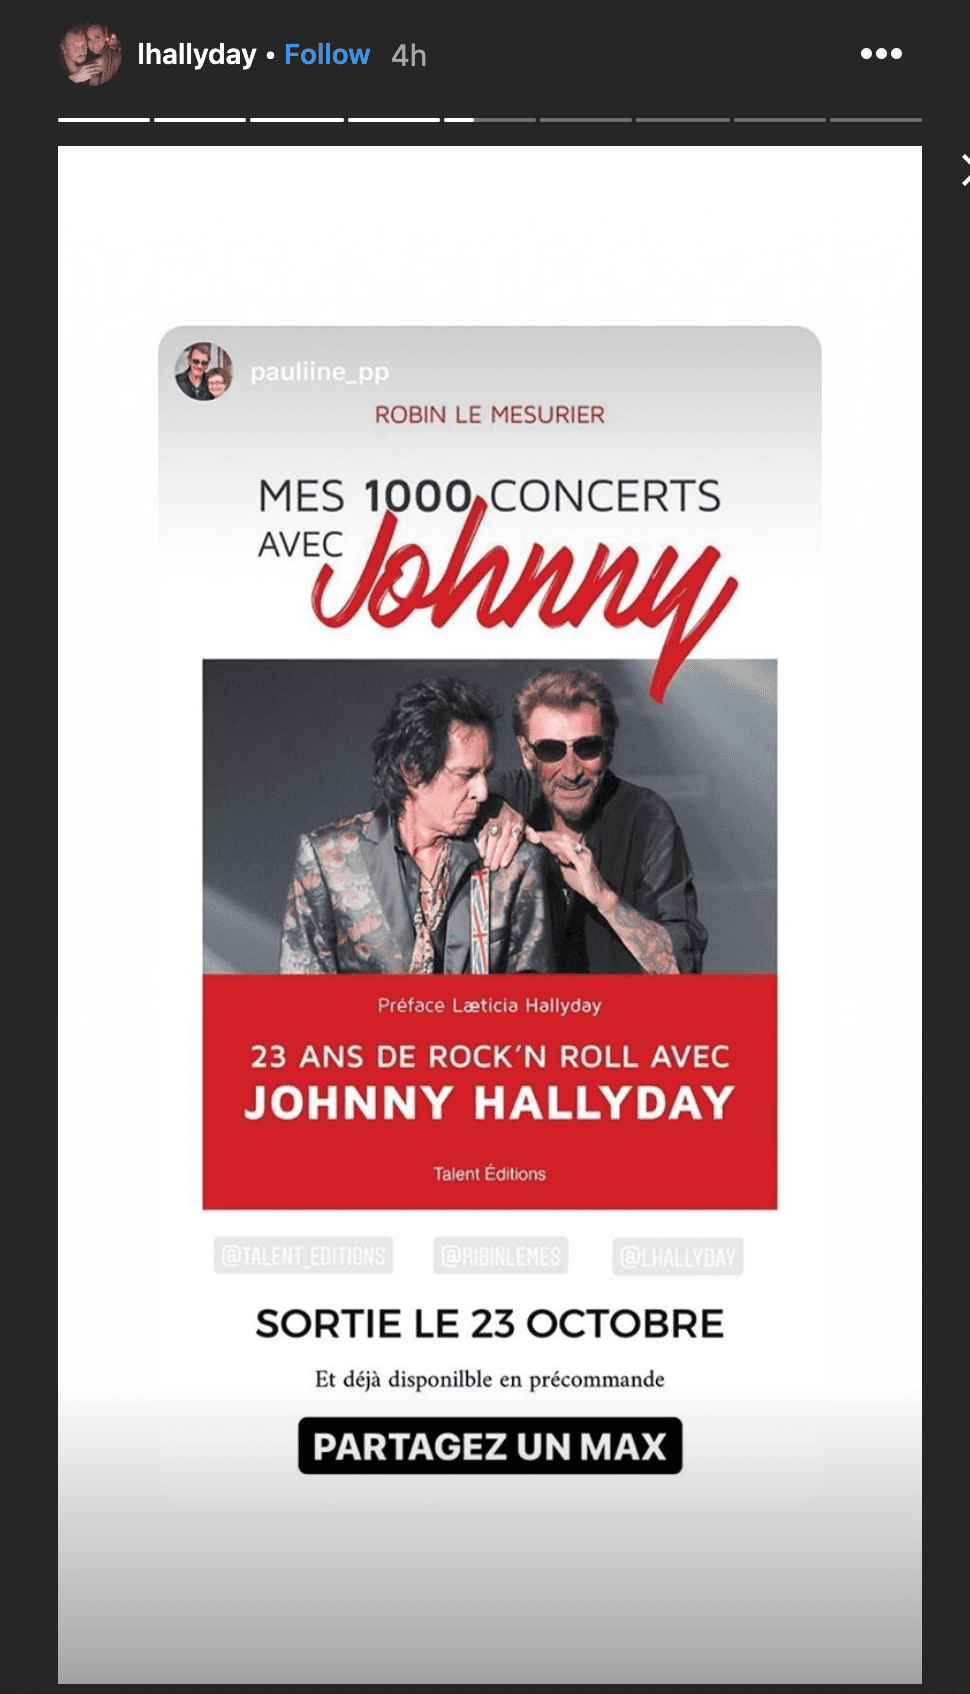 Johnny Hallyday et son guitariste. | Photo : lhallyday/Instagram